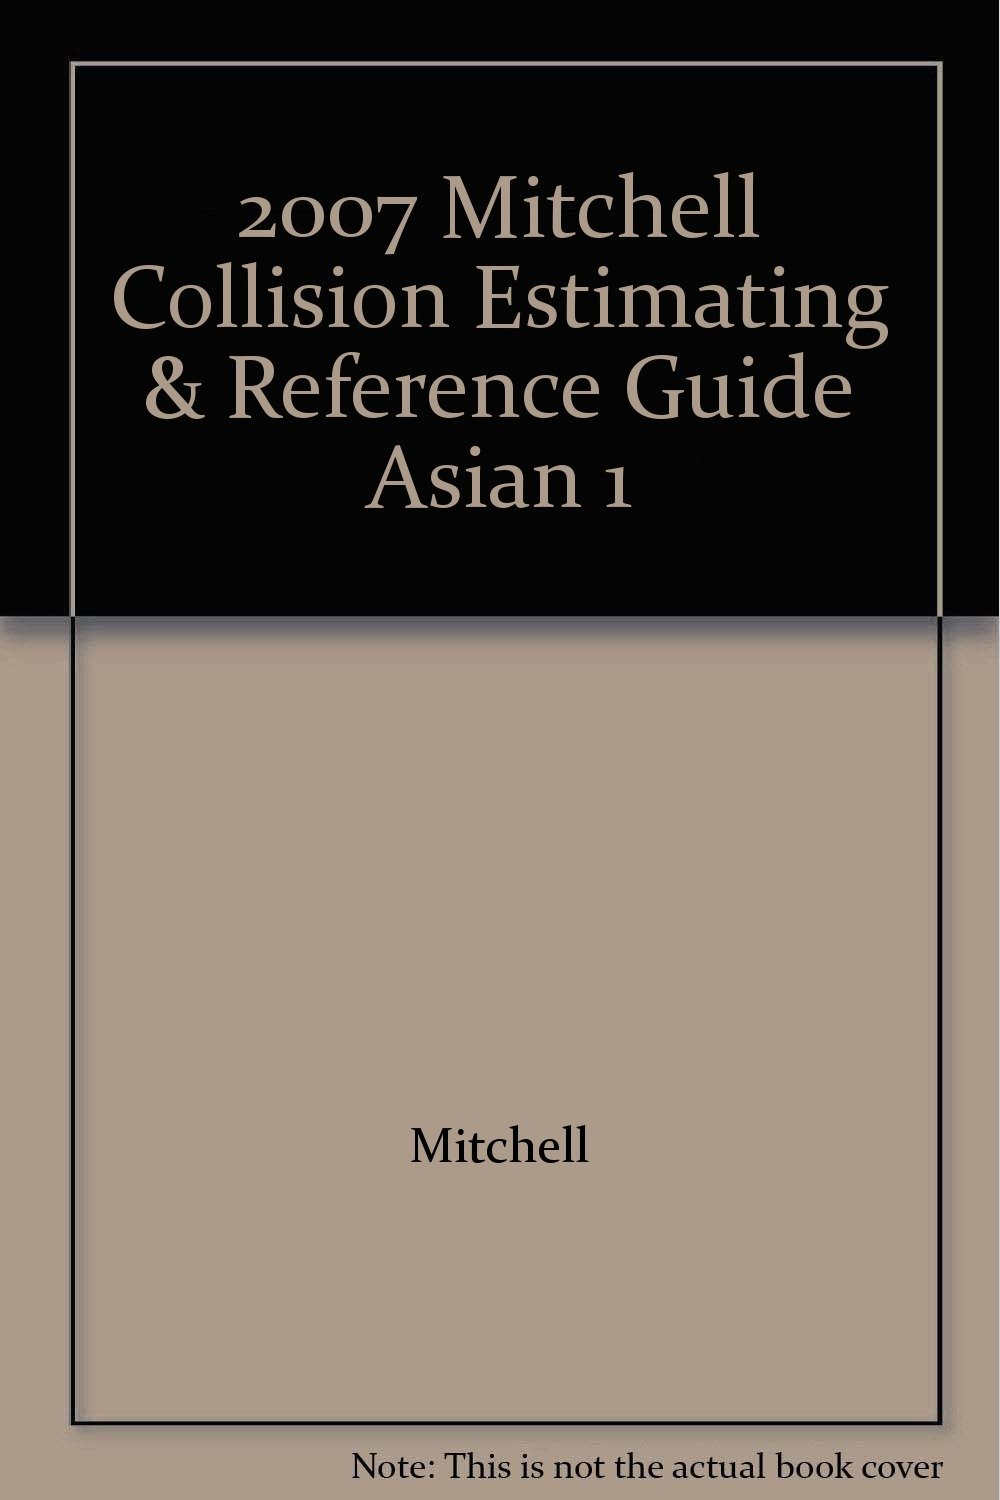 2007 Mitchell Collision Estimating & Reference Guide Asian 1: Mitchell:  9780847028504: Amazon.com: Books